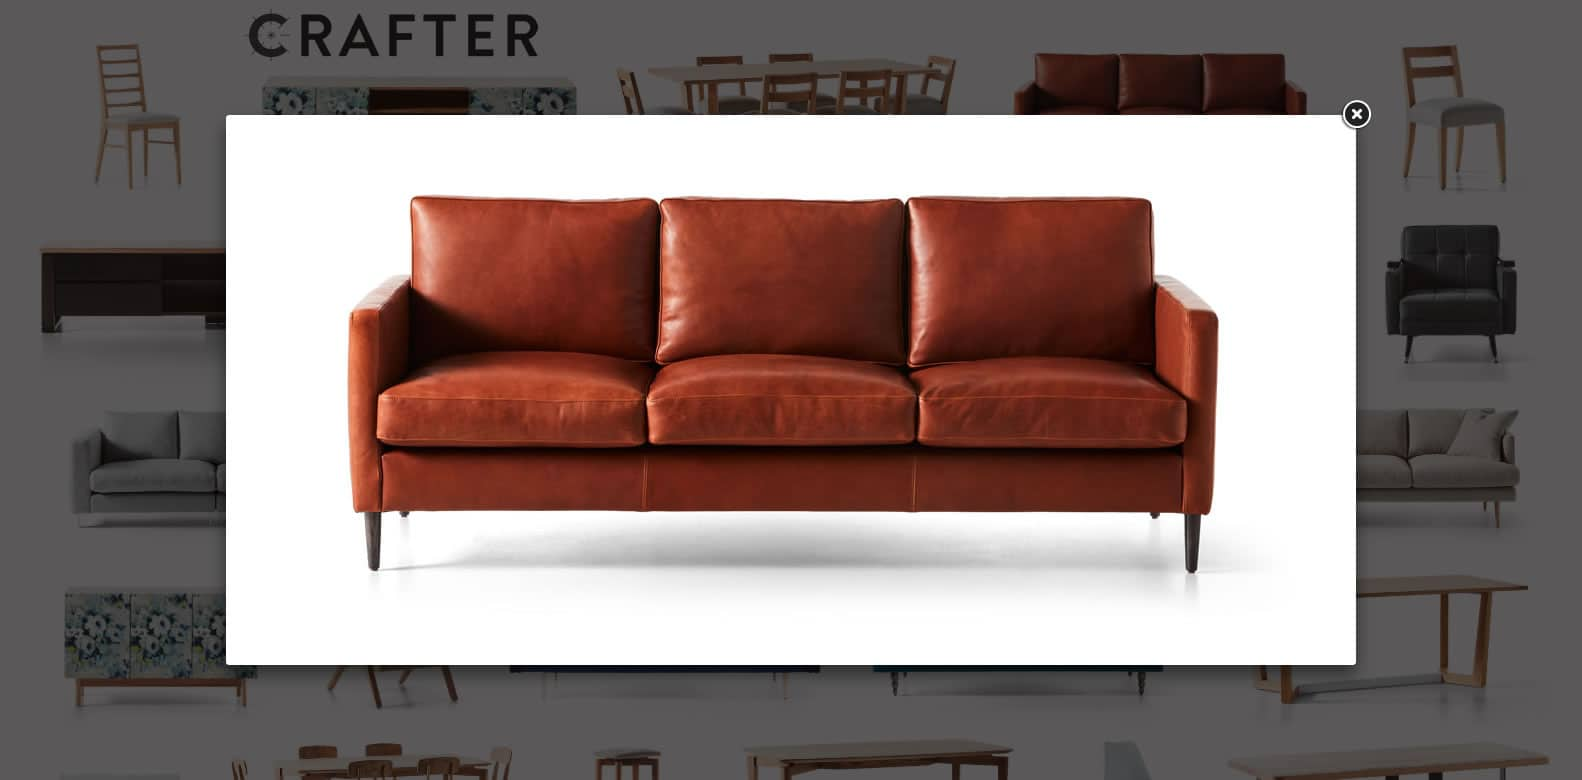 Crafter Web Design - A Couch